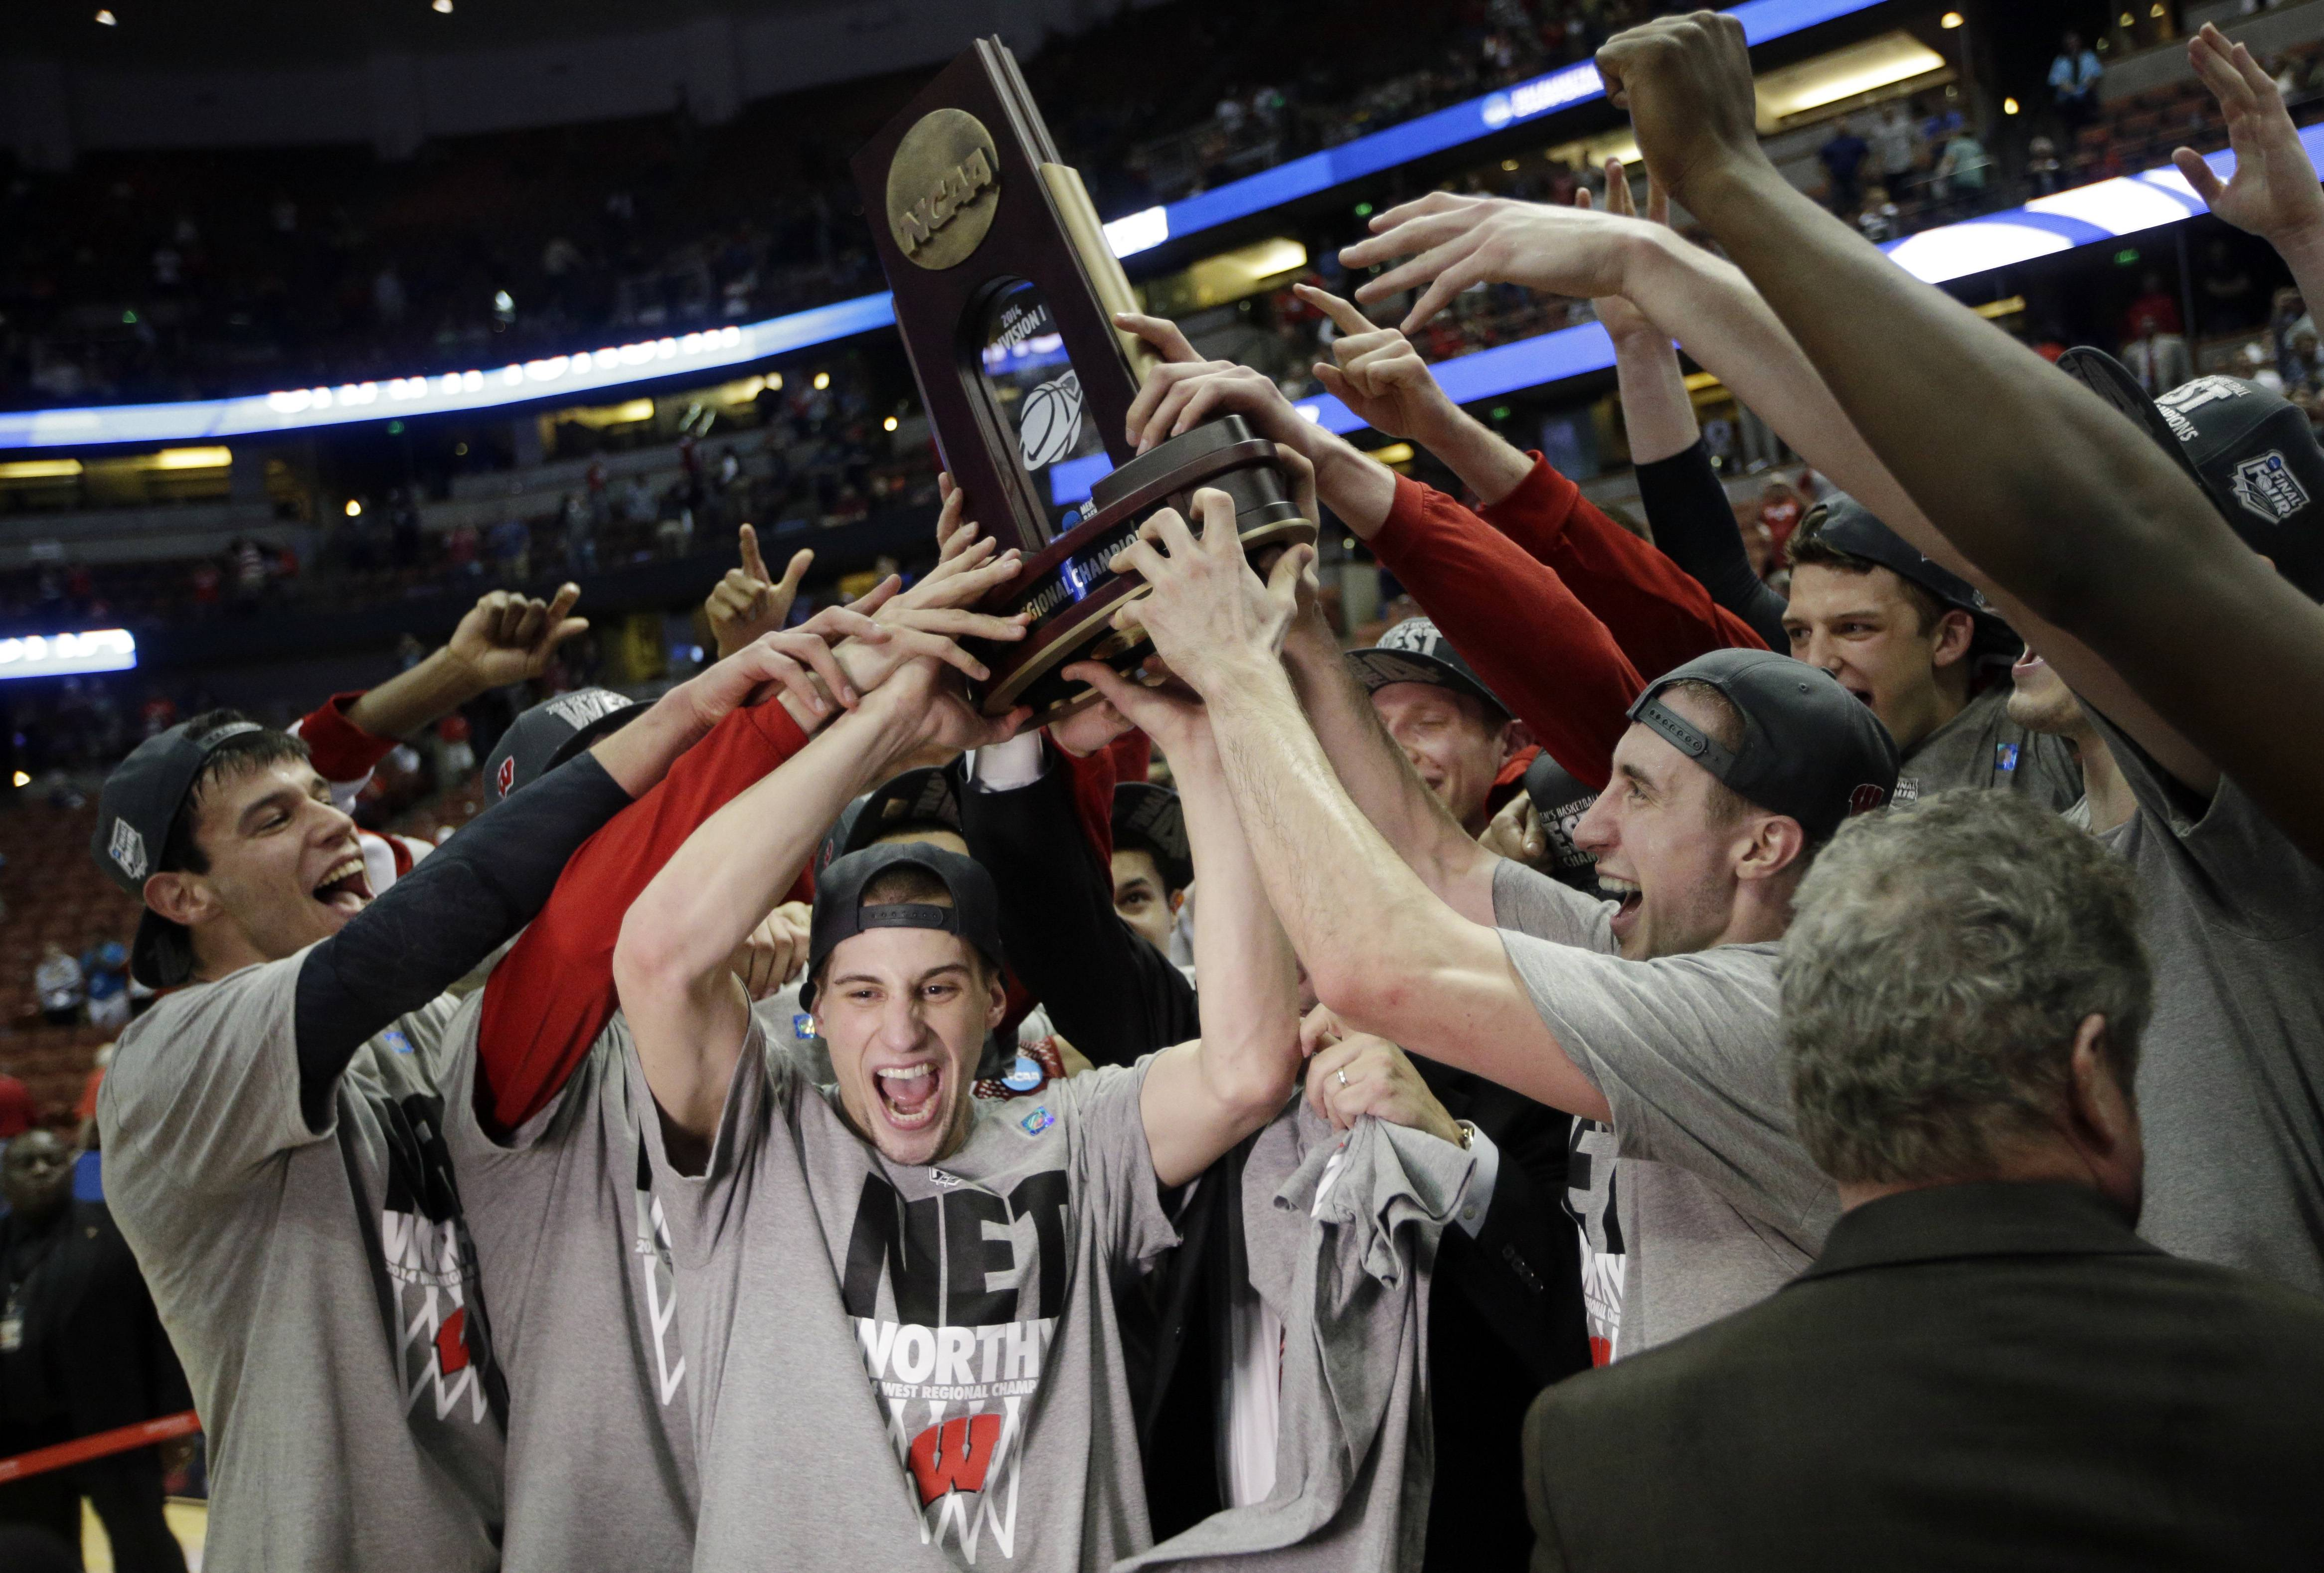 Wisconsin players celebrate after they won their regional final NCAA college basketball tournament game against Arizona, Saturday in Anaheim, Calif.